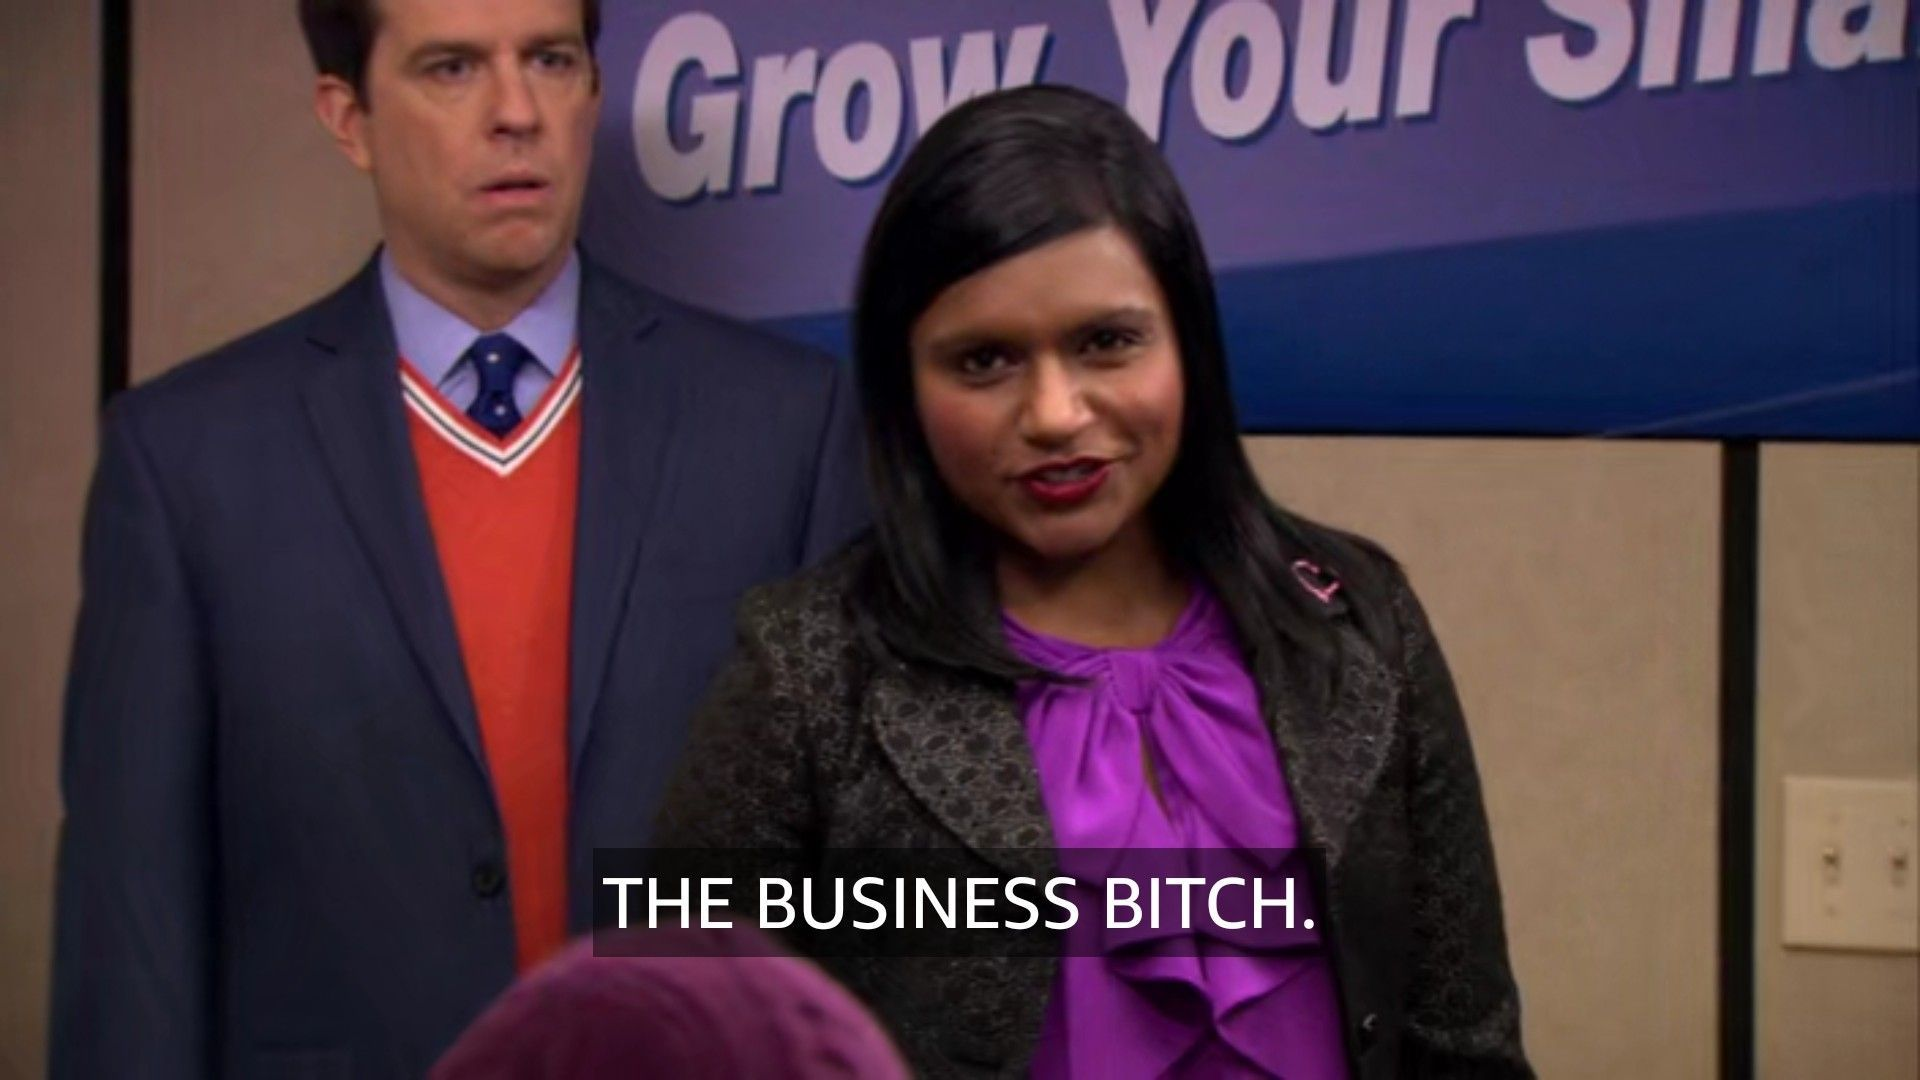 The Office Quotes Kelly Kapoor#kapoor #kelly #office #quotes